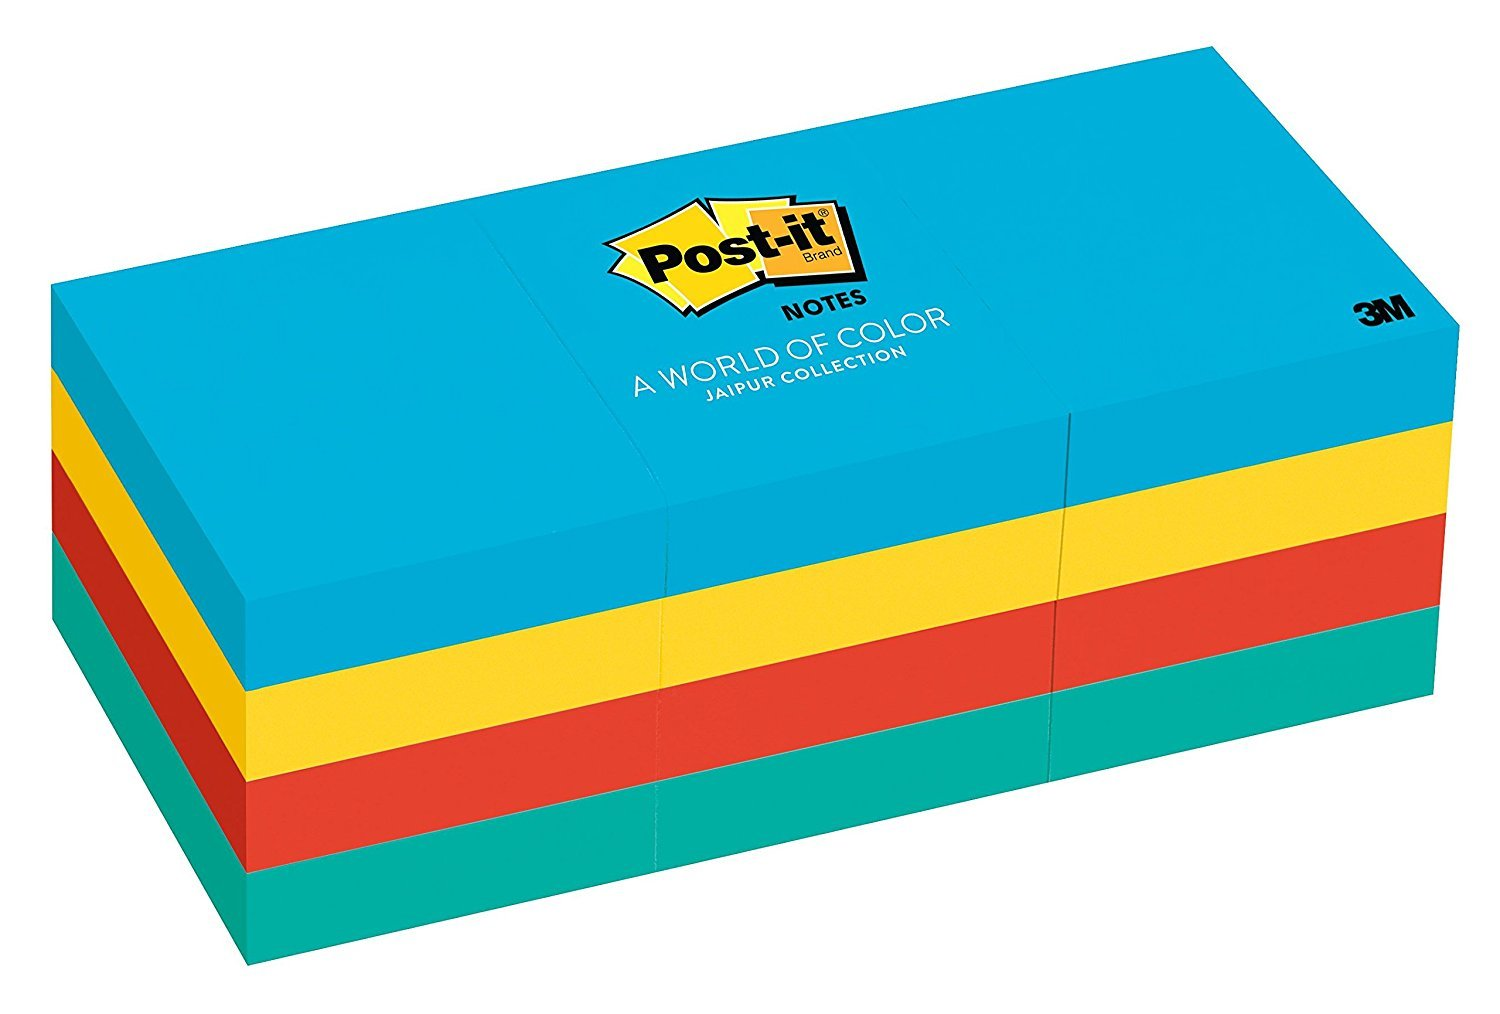 Post-it Notes, 1-1/2 x 2-Inches, Assorted Ultra Colors, 12-Pads/Pack, Case of 36 Packs (432 Pads)